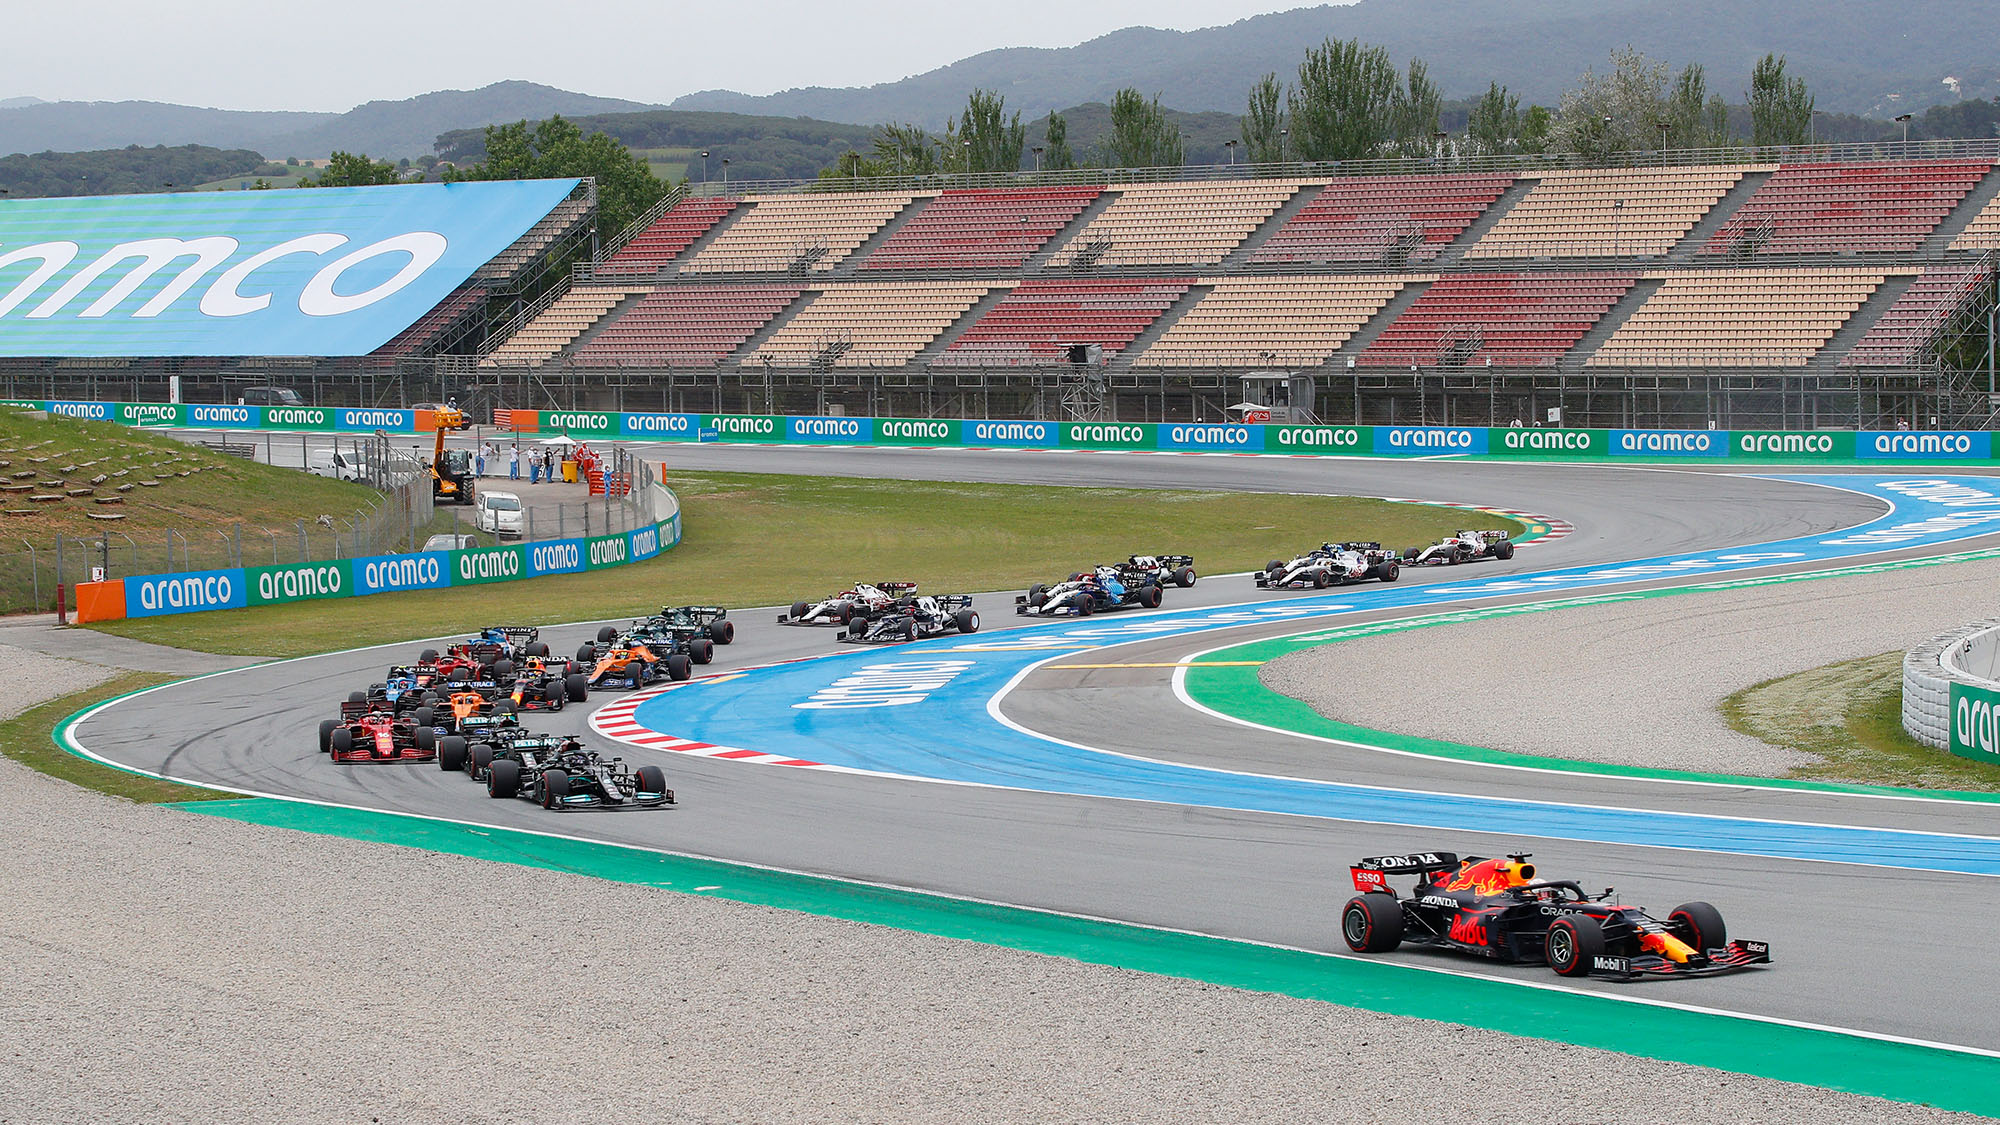 BARCELONA, SPAIN - MAY 09: Start of the Spanish GP during the F1 Grand Prix of Spain at Circuit de Barcelona-Catalunya on May 09, 2021 in Barcelona, Spain. (Photo by Eric Alonso/Getty Images)